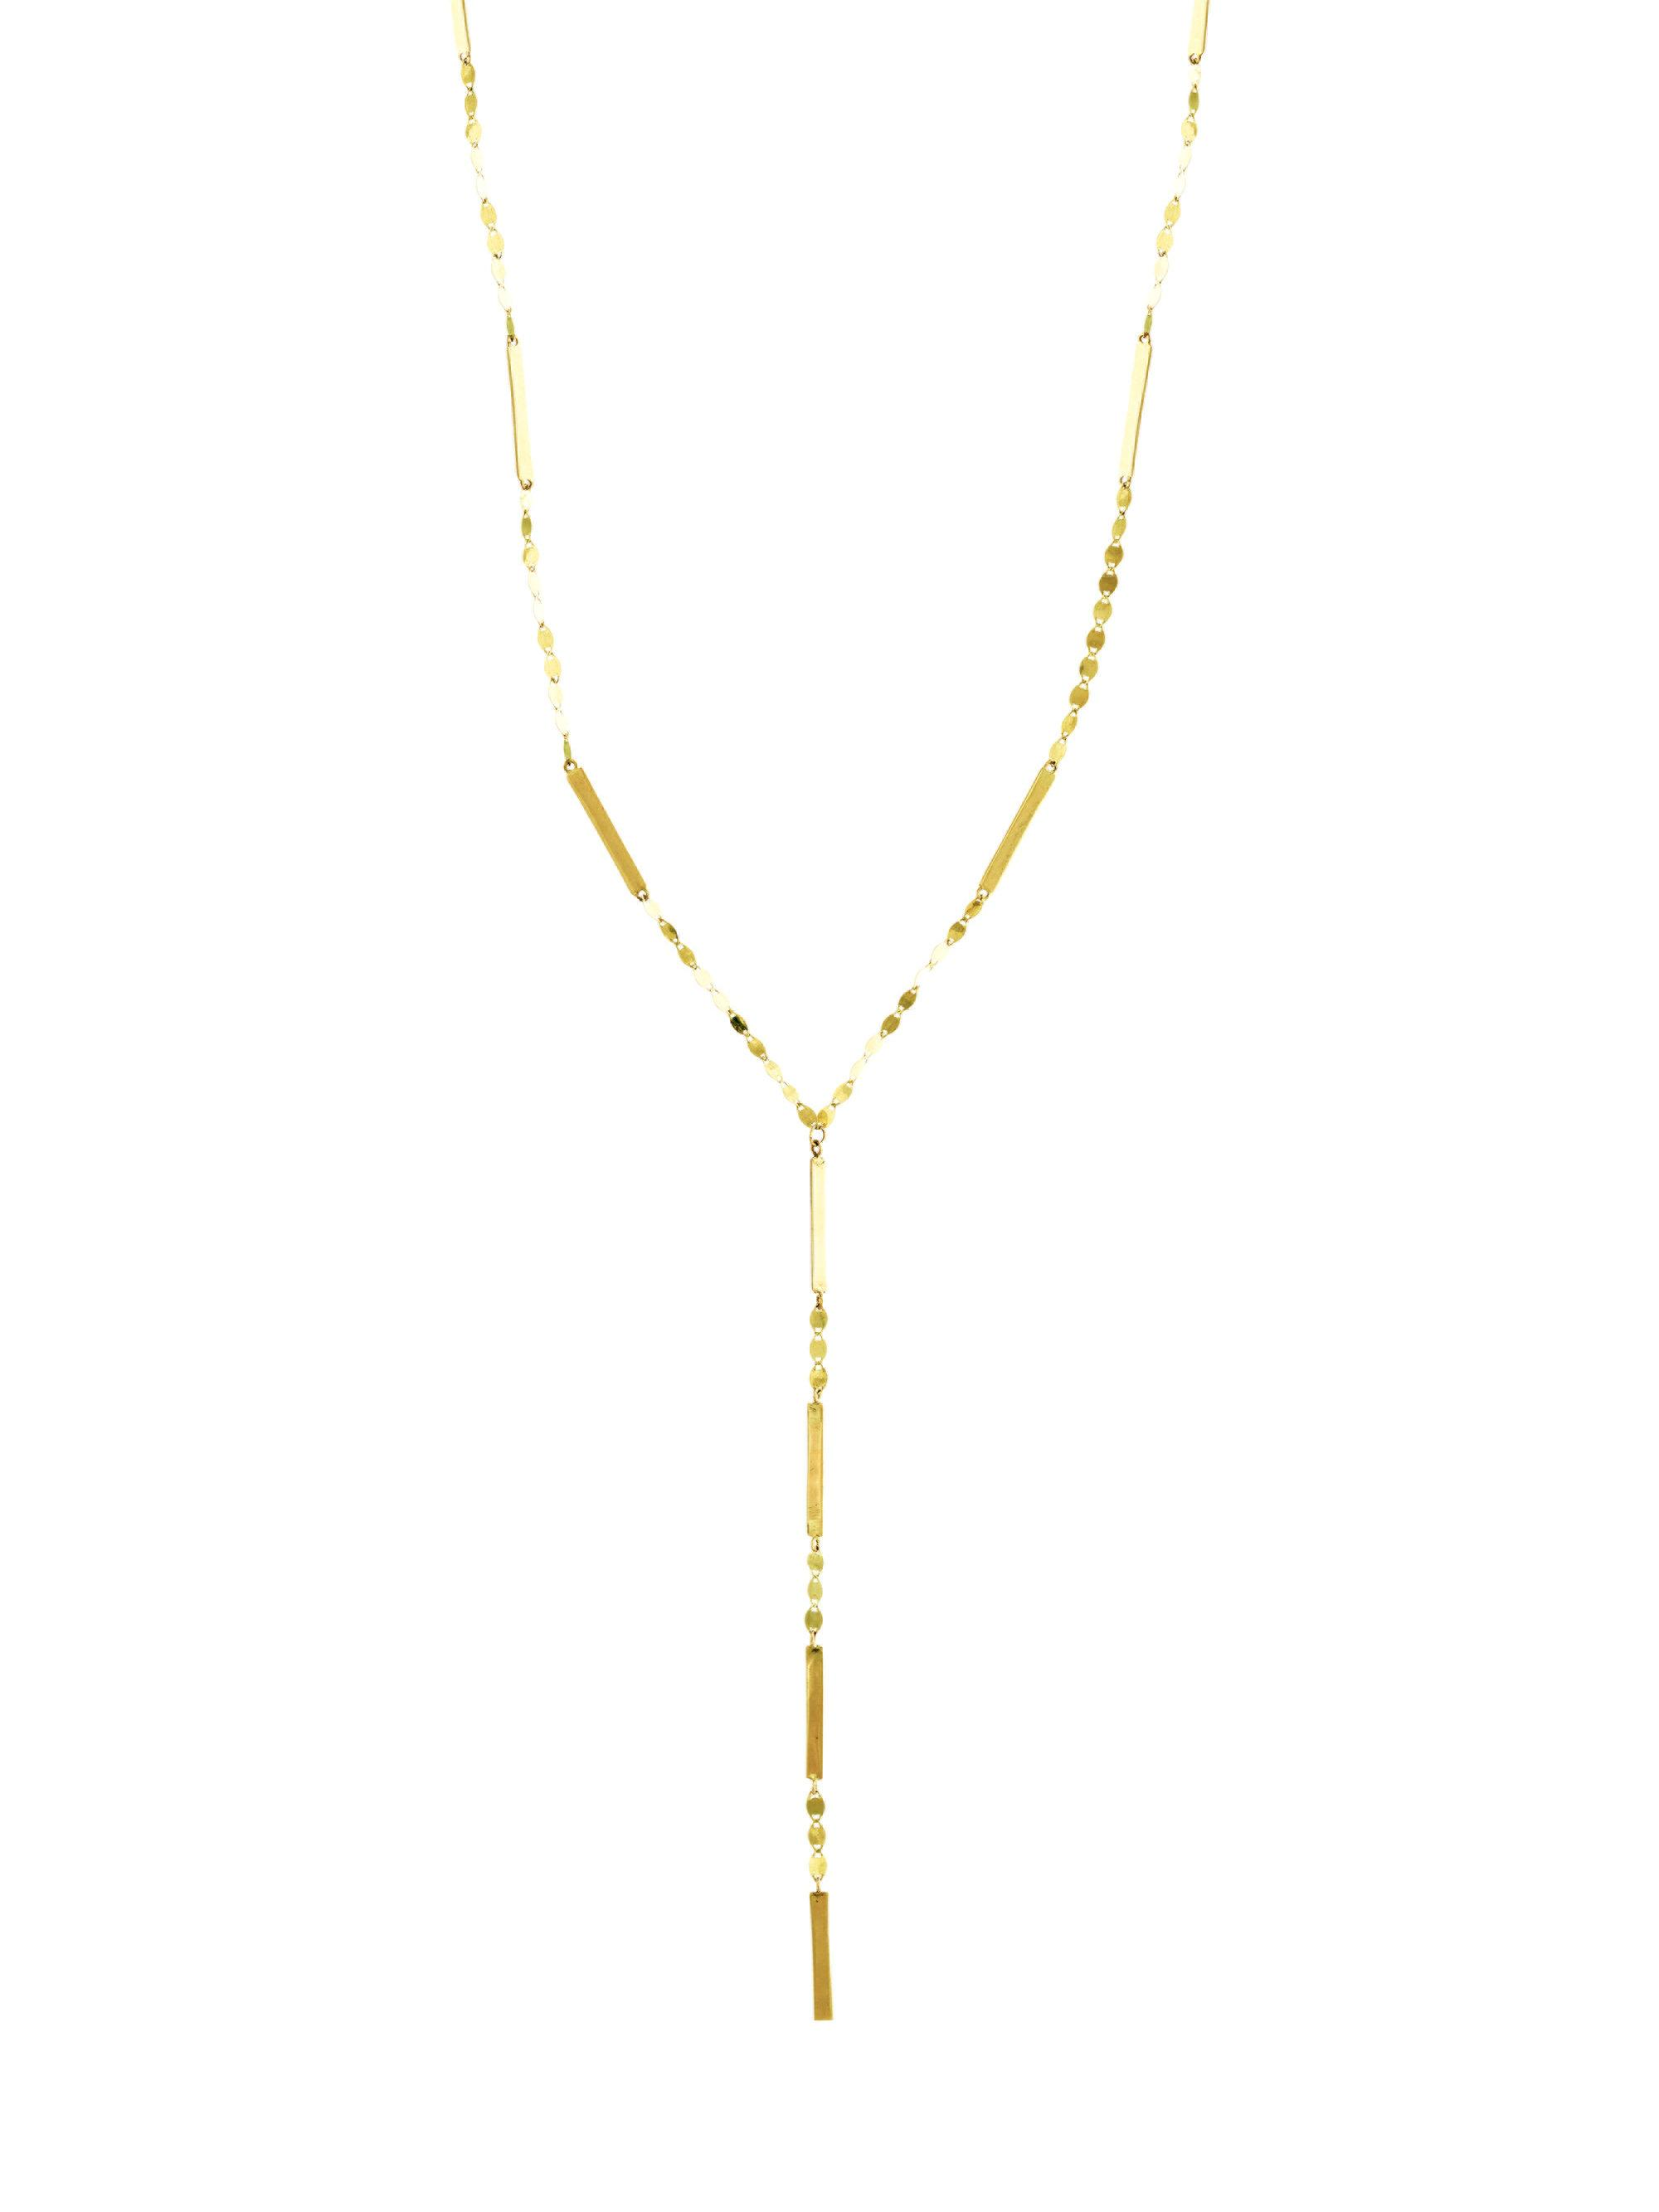 Lana Jewelry Diamond Double Bar Necklace in 14K Yellow Gold 7vvRn